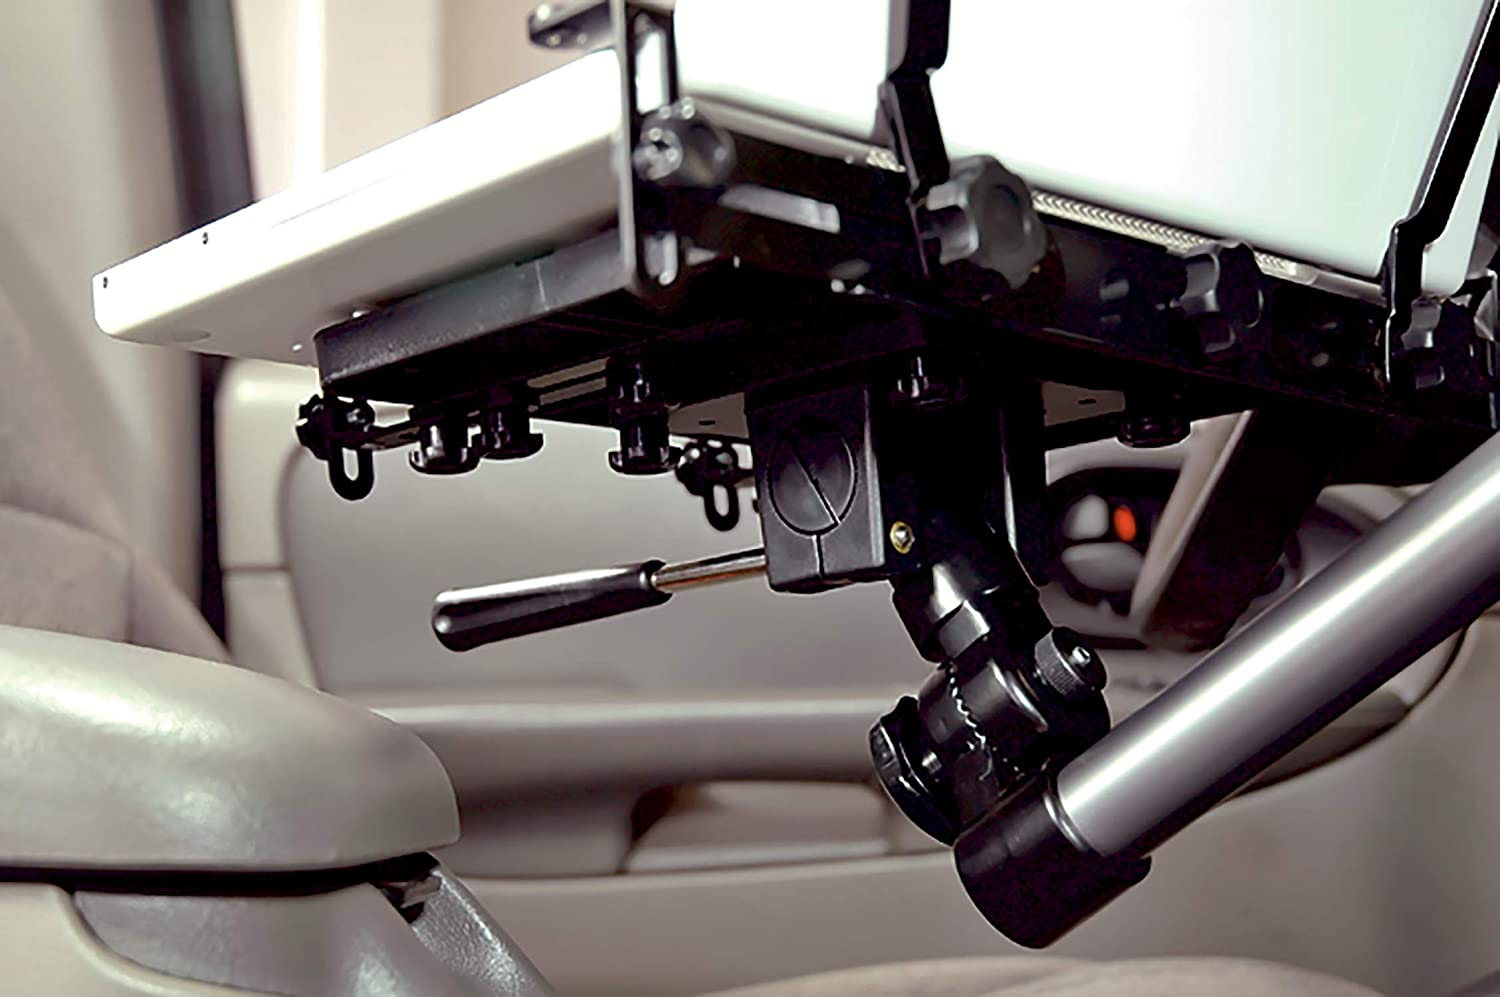 Amazon Com Bracketron Car Truck Van Suv Universal Vehicle Laptop Pc Mount Works With Laptops Up To 17 Attaches To Passenger Seat Bolt Using The Quick Release Fitting Ltm Ms 525 Black Computers